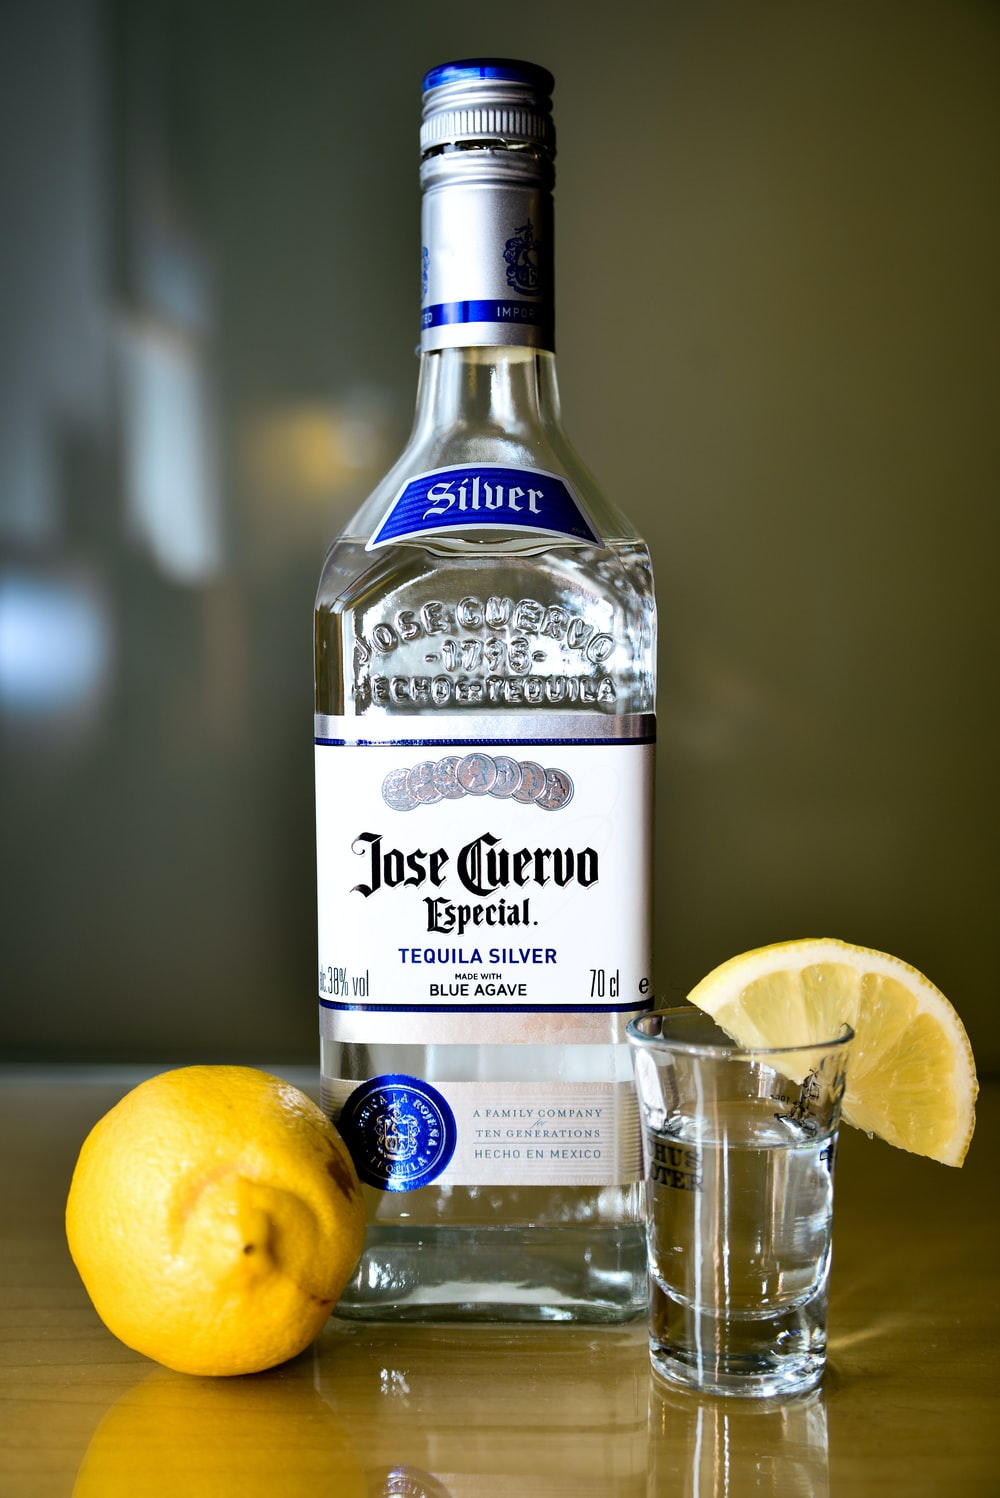 closeup photo of sealed Jose Cuervo tequila silver bottle